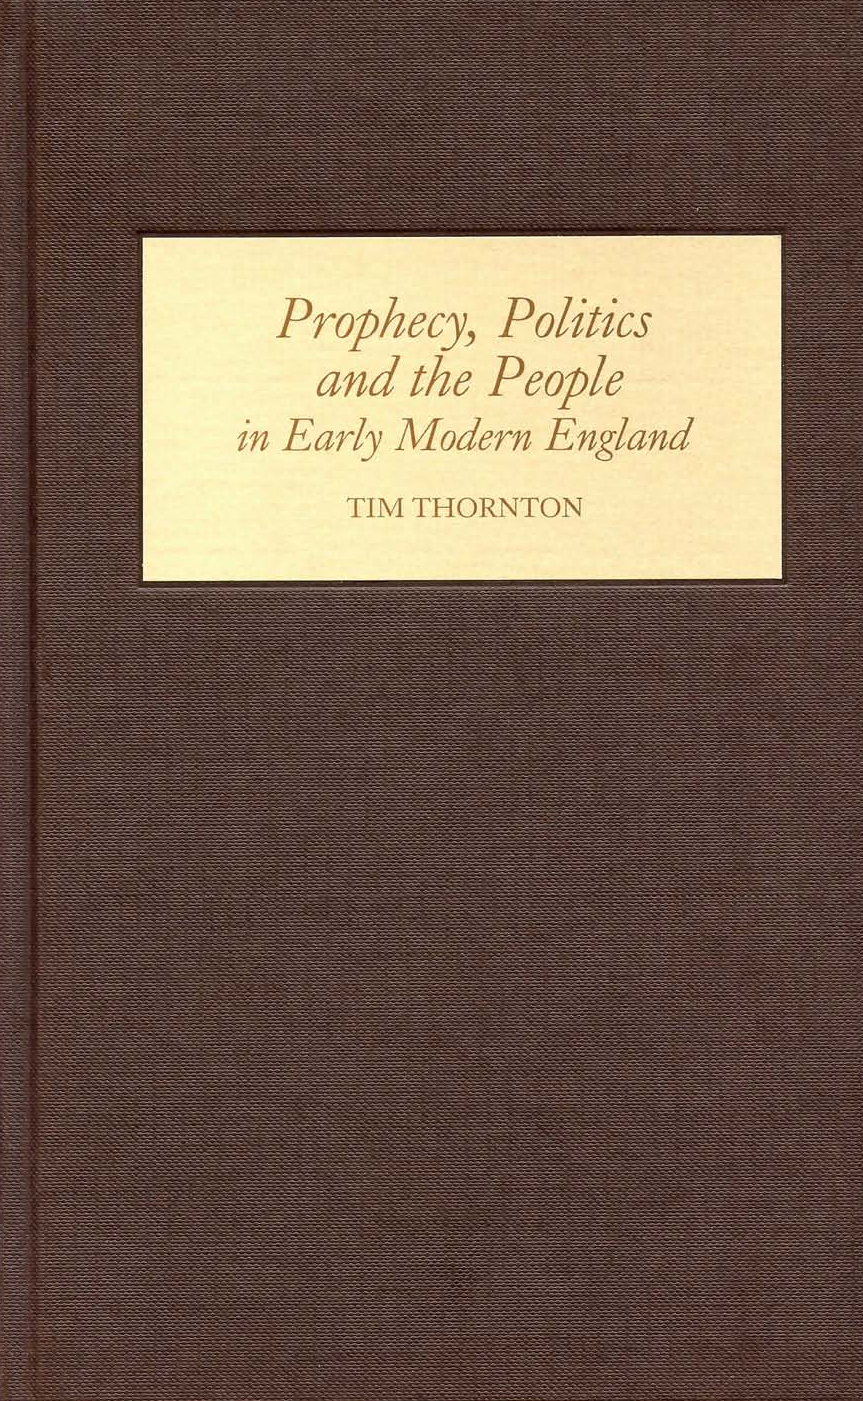 Tim Thornton Prophecy Politics and the People in Early